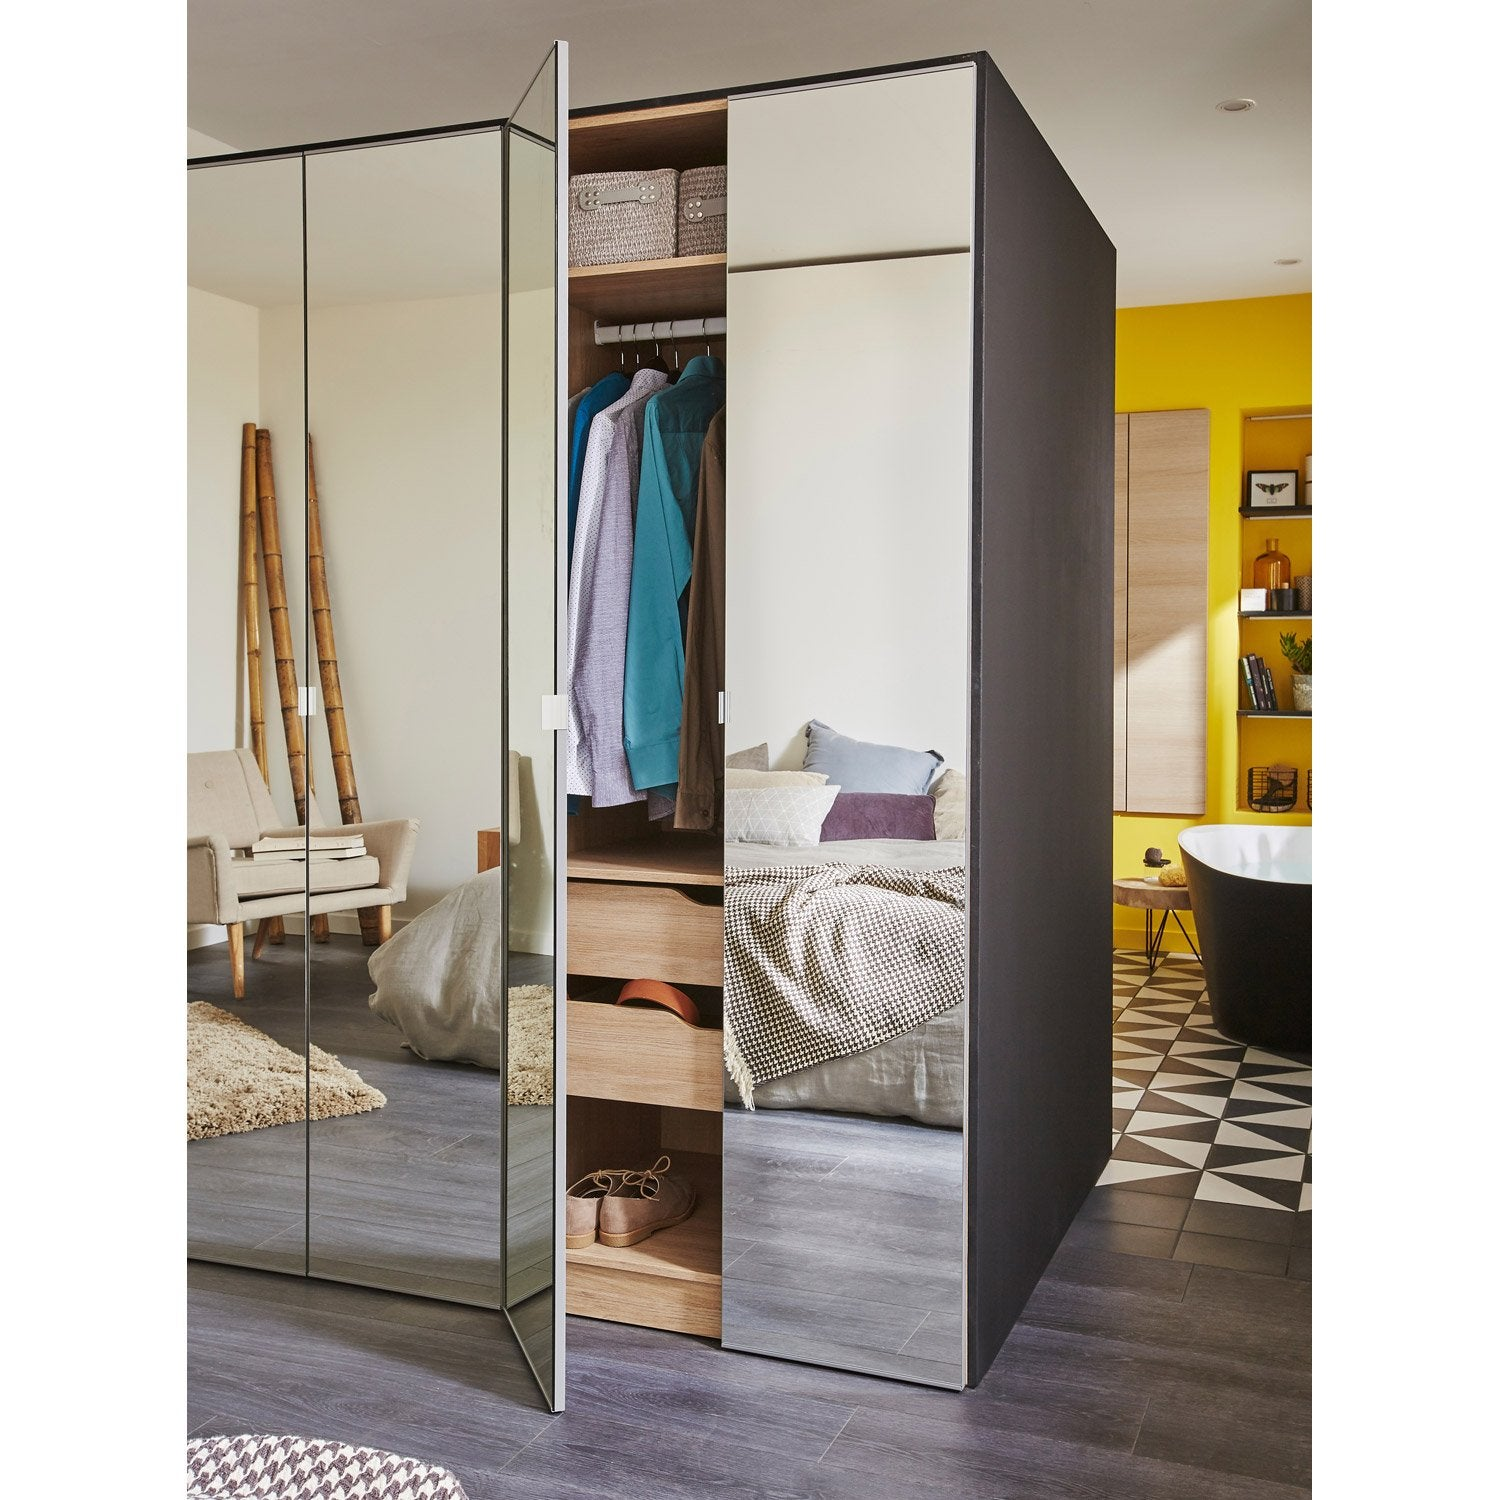 Grand Porte Battante SPACEO Home 200 X 40 X 1.6 Cm, Miroir